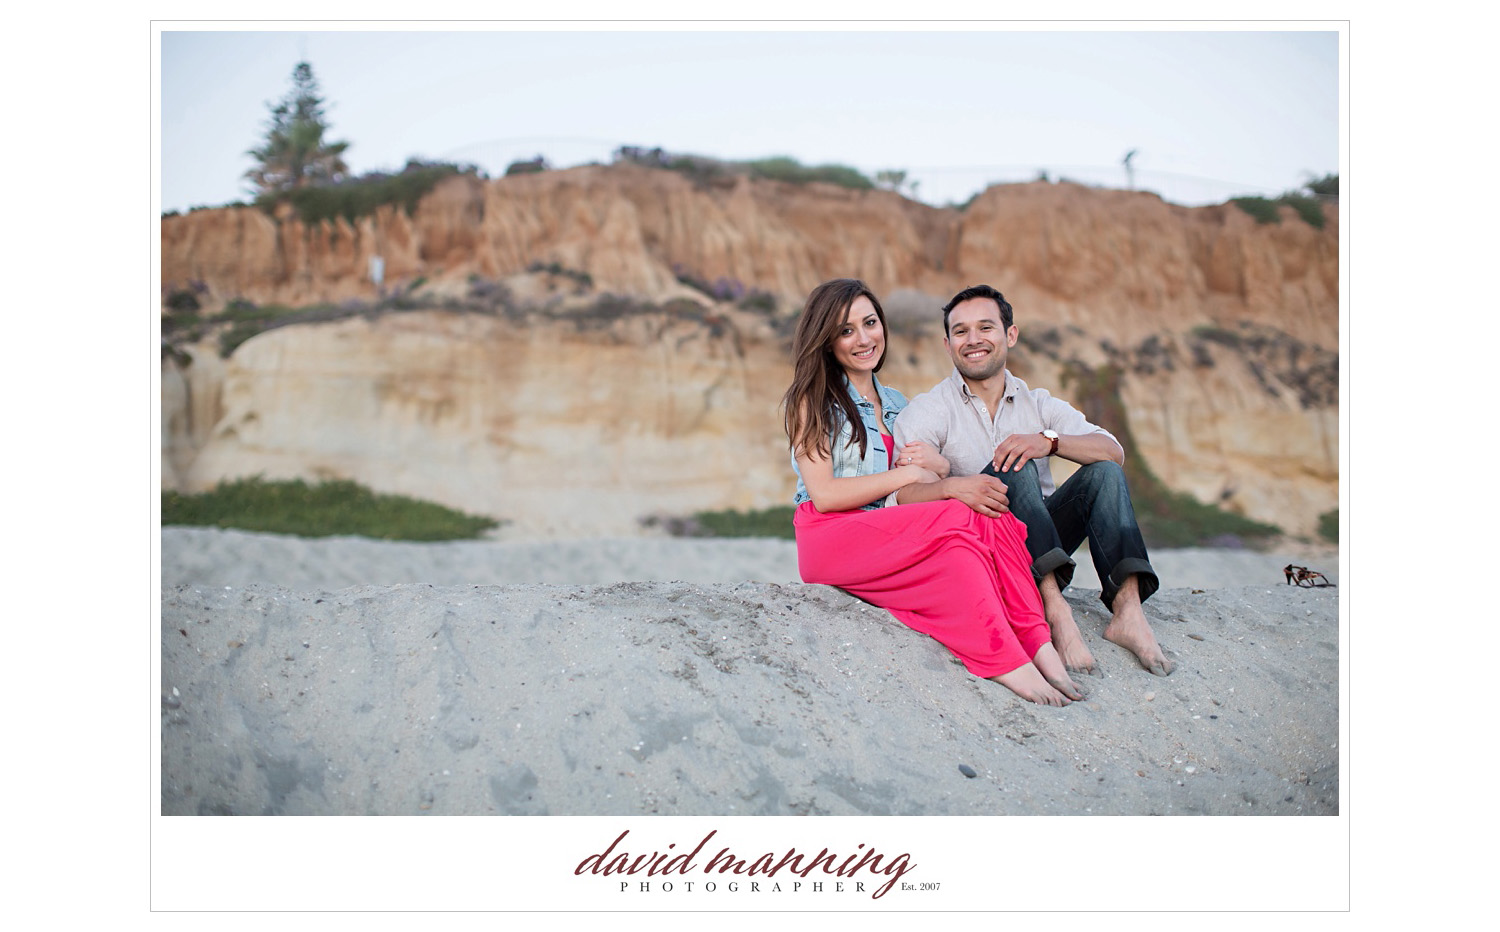 Encinitas-Engagement-Photos-San-Diego-David-Manning_0017.jpg